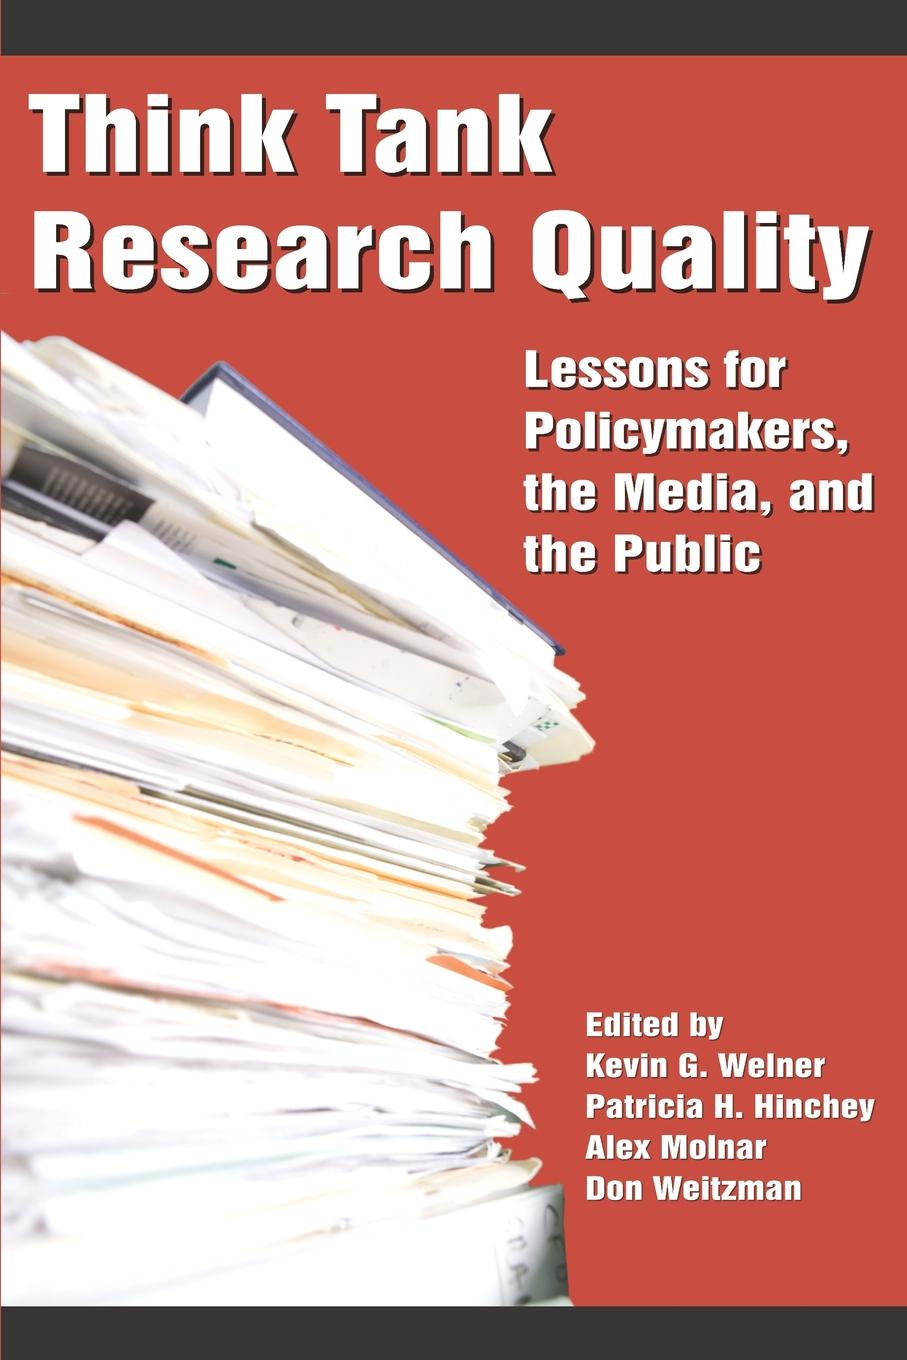 лучшая цена Think Tank Research Quality. Lessons for Policy Makers, the Media, and the Public (PB)